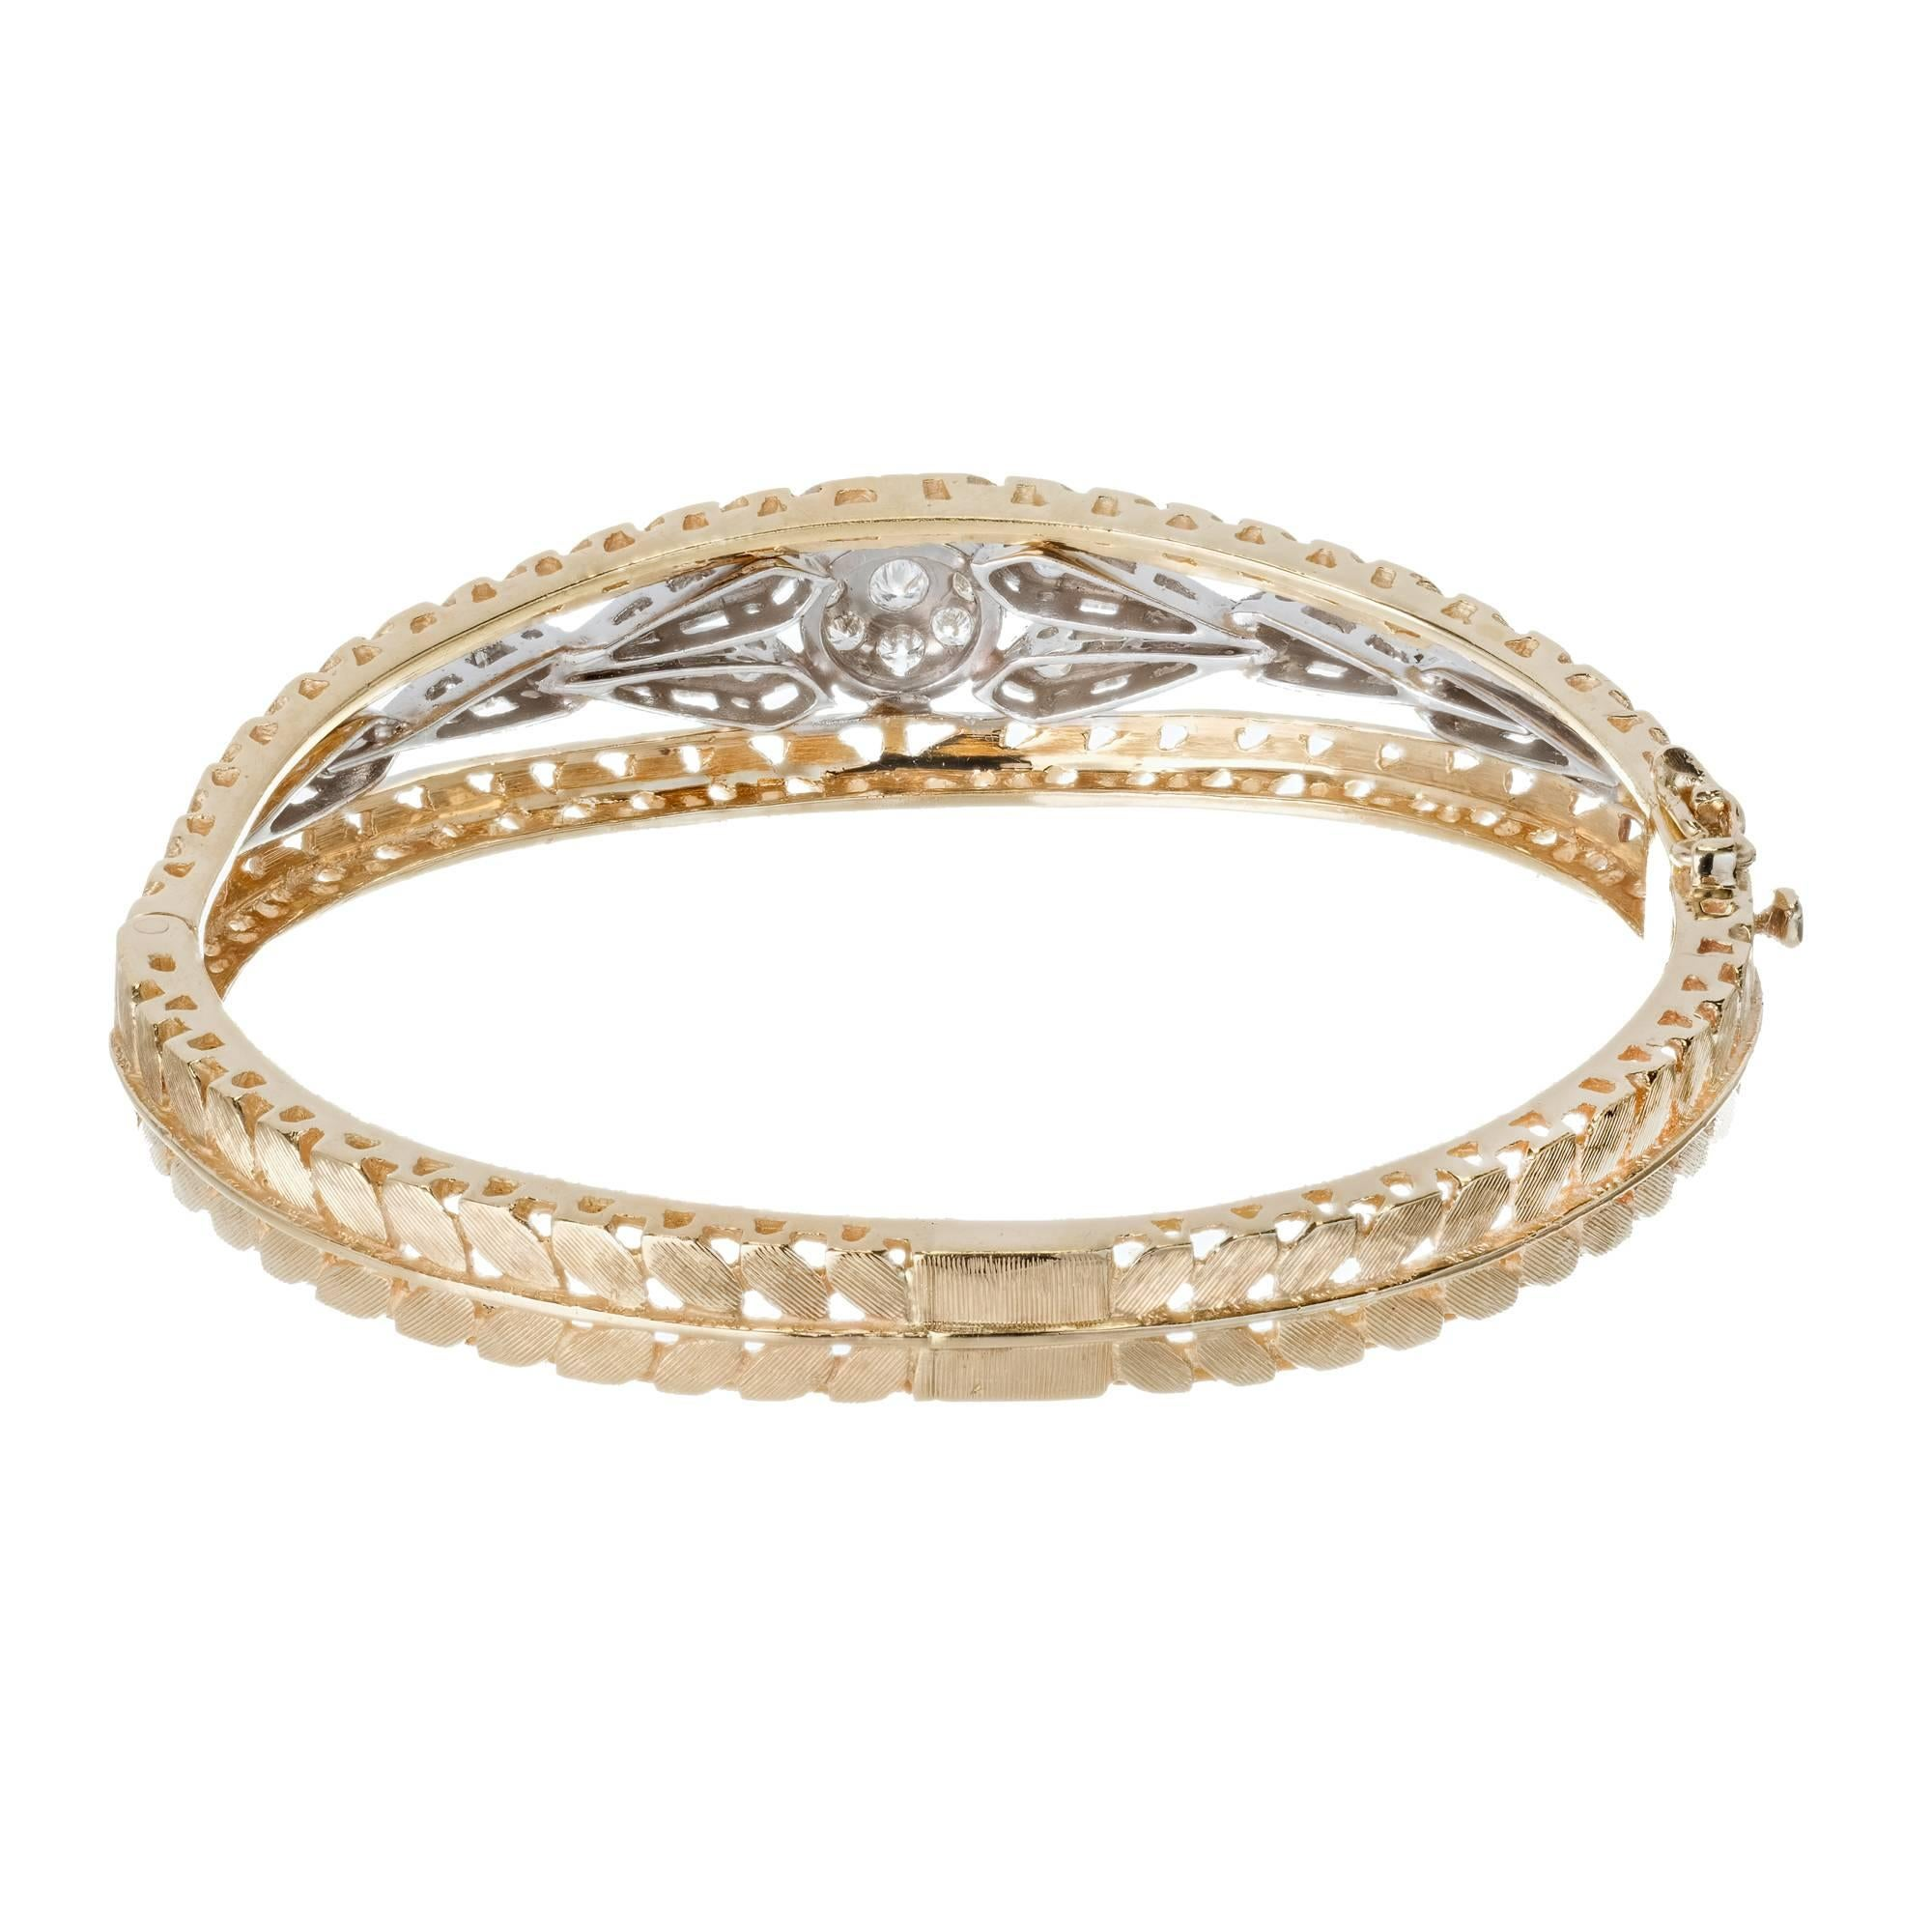 bangles pave bangle round bracelet kappy white s jewelry product gold diamond